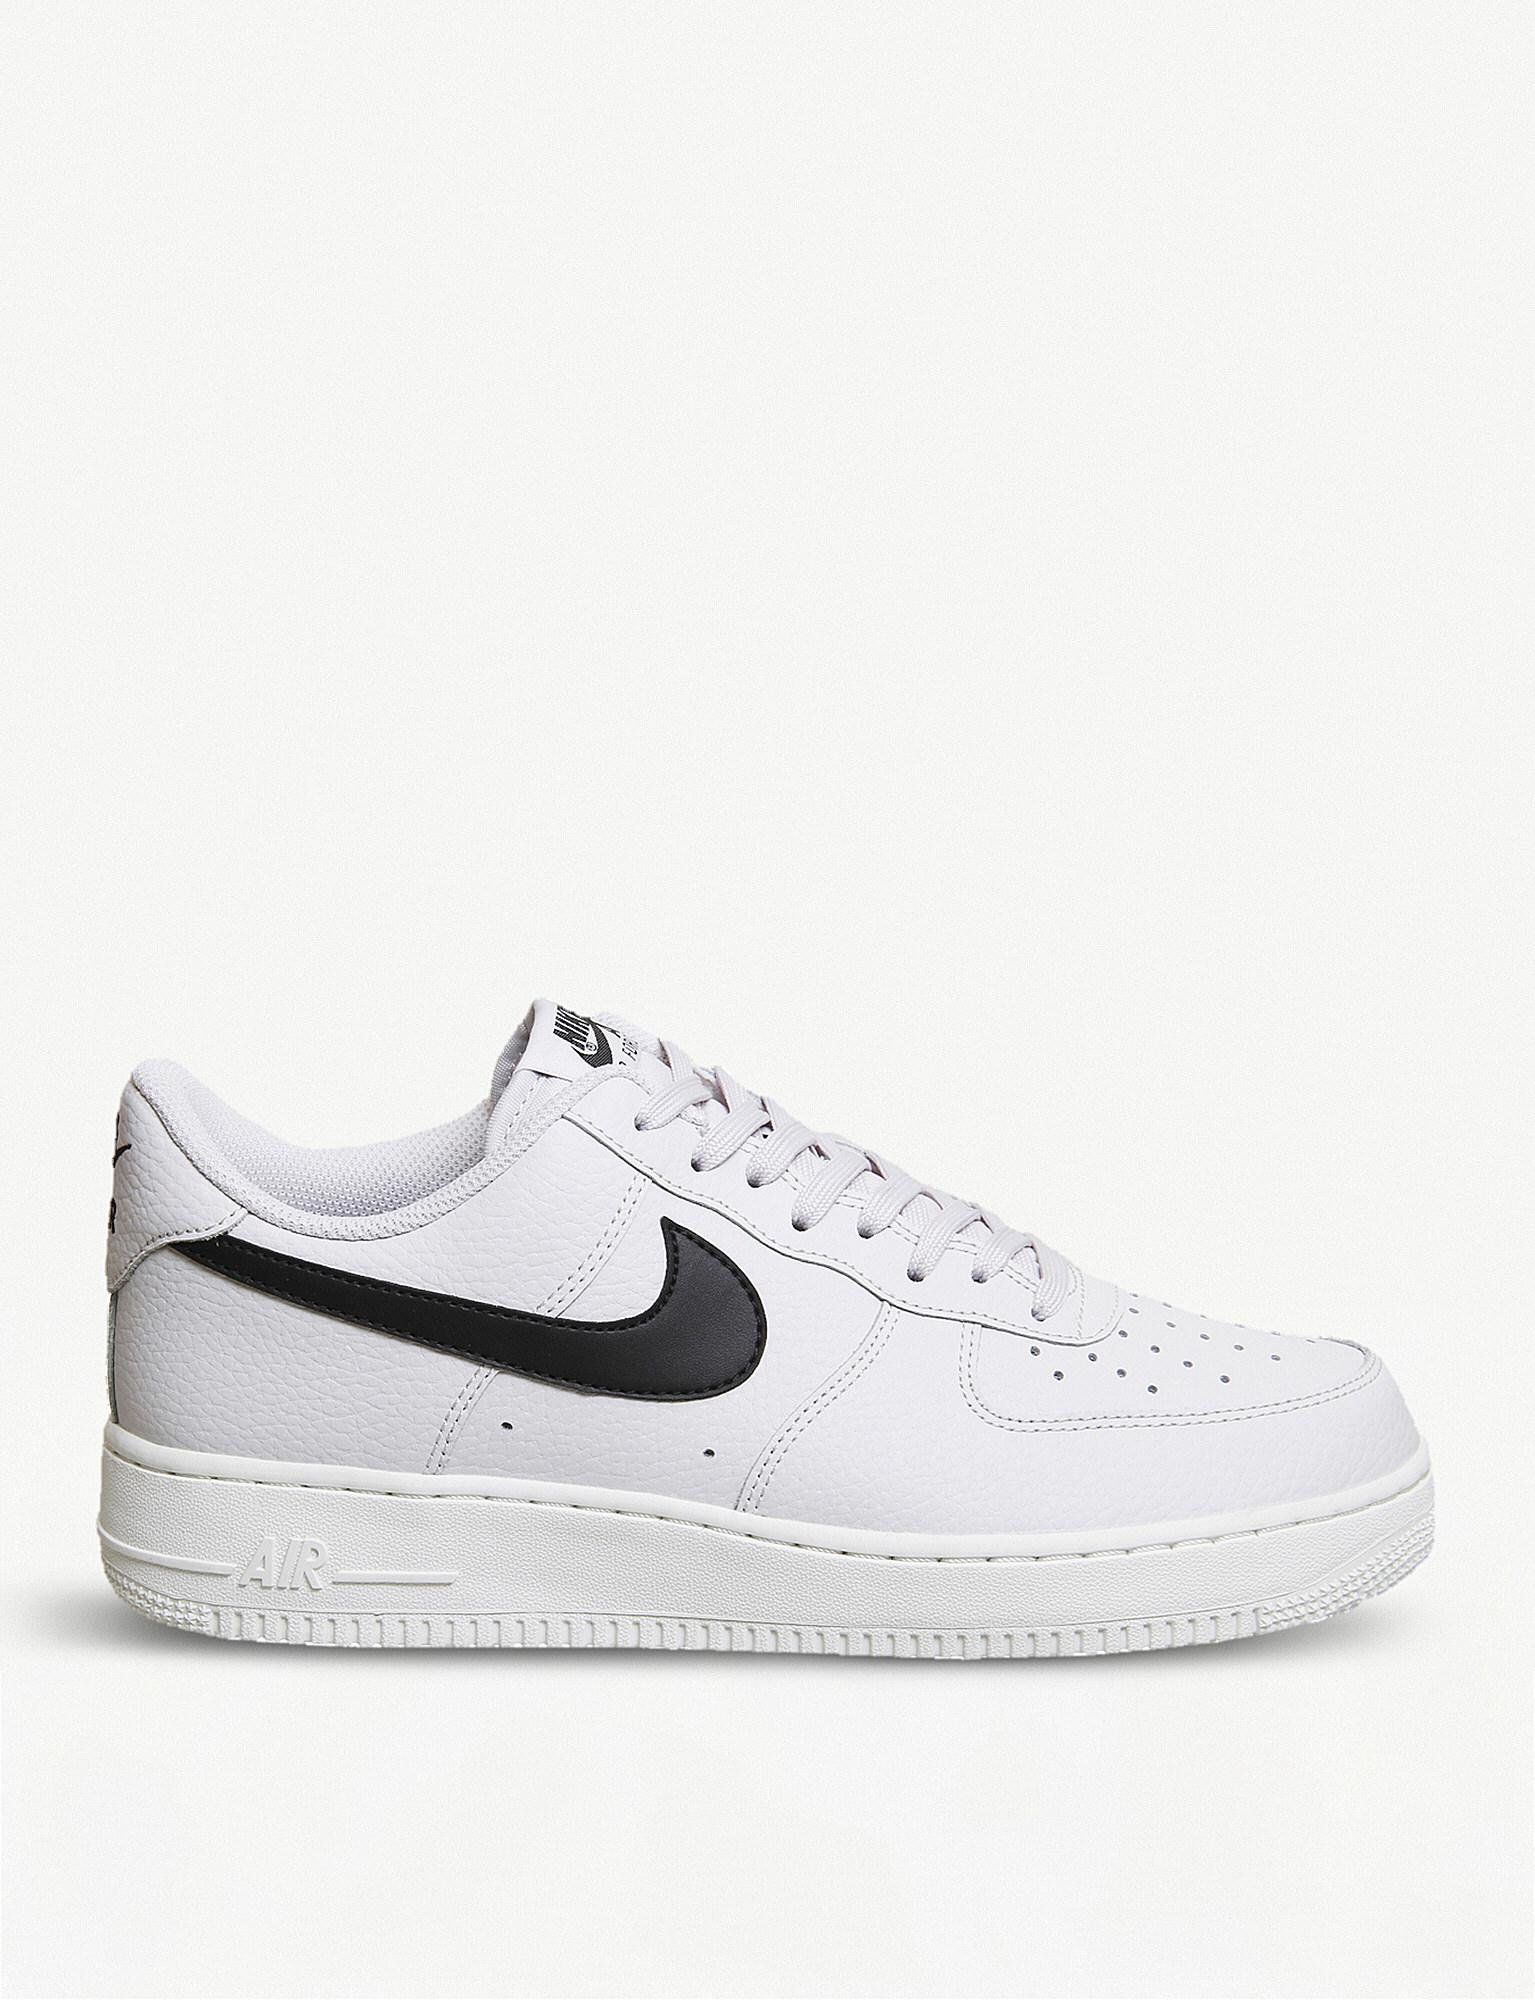 Nike. Women's White Air Force 1 07 Leather Trainers